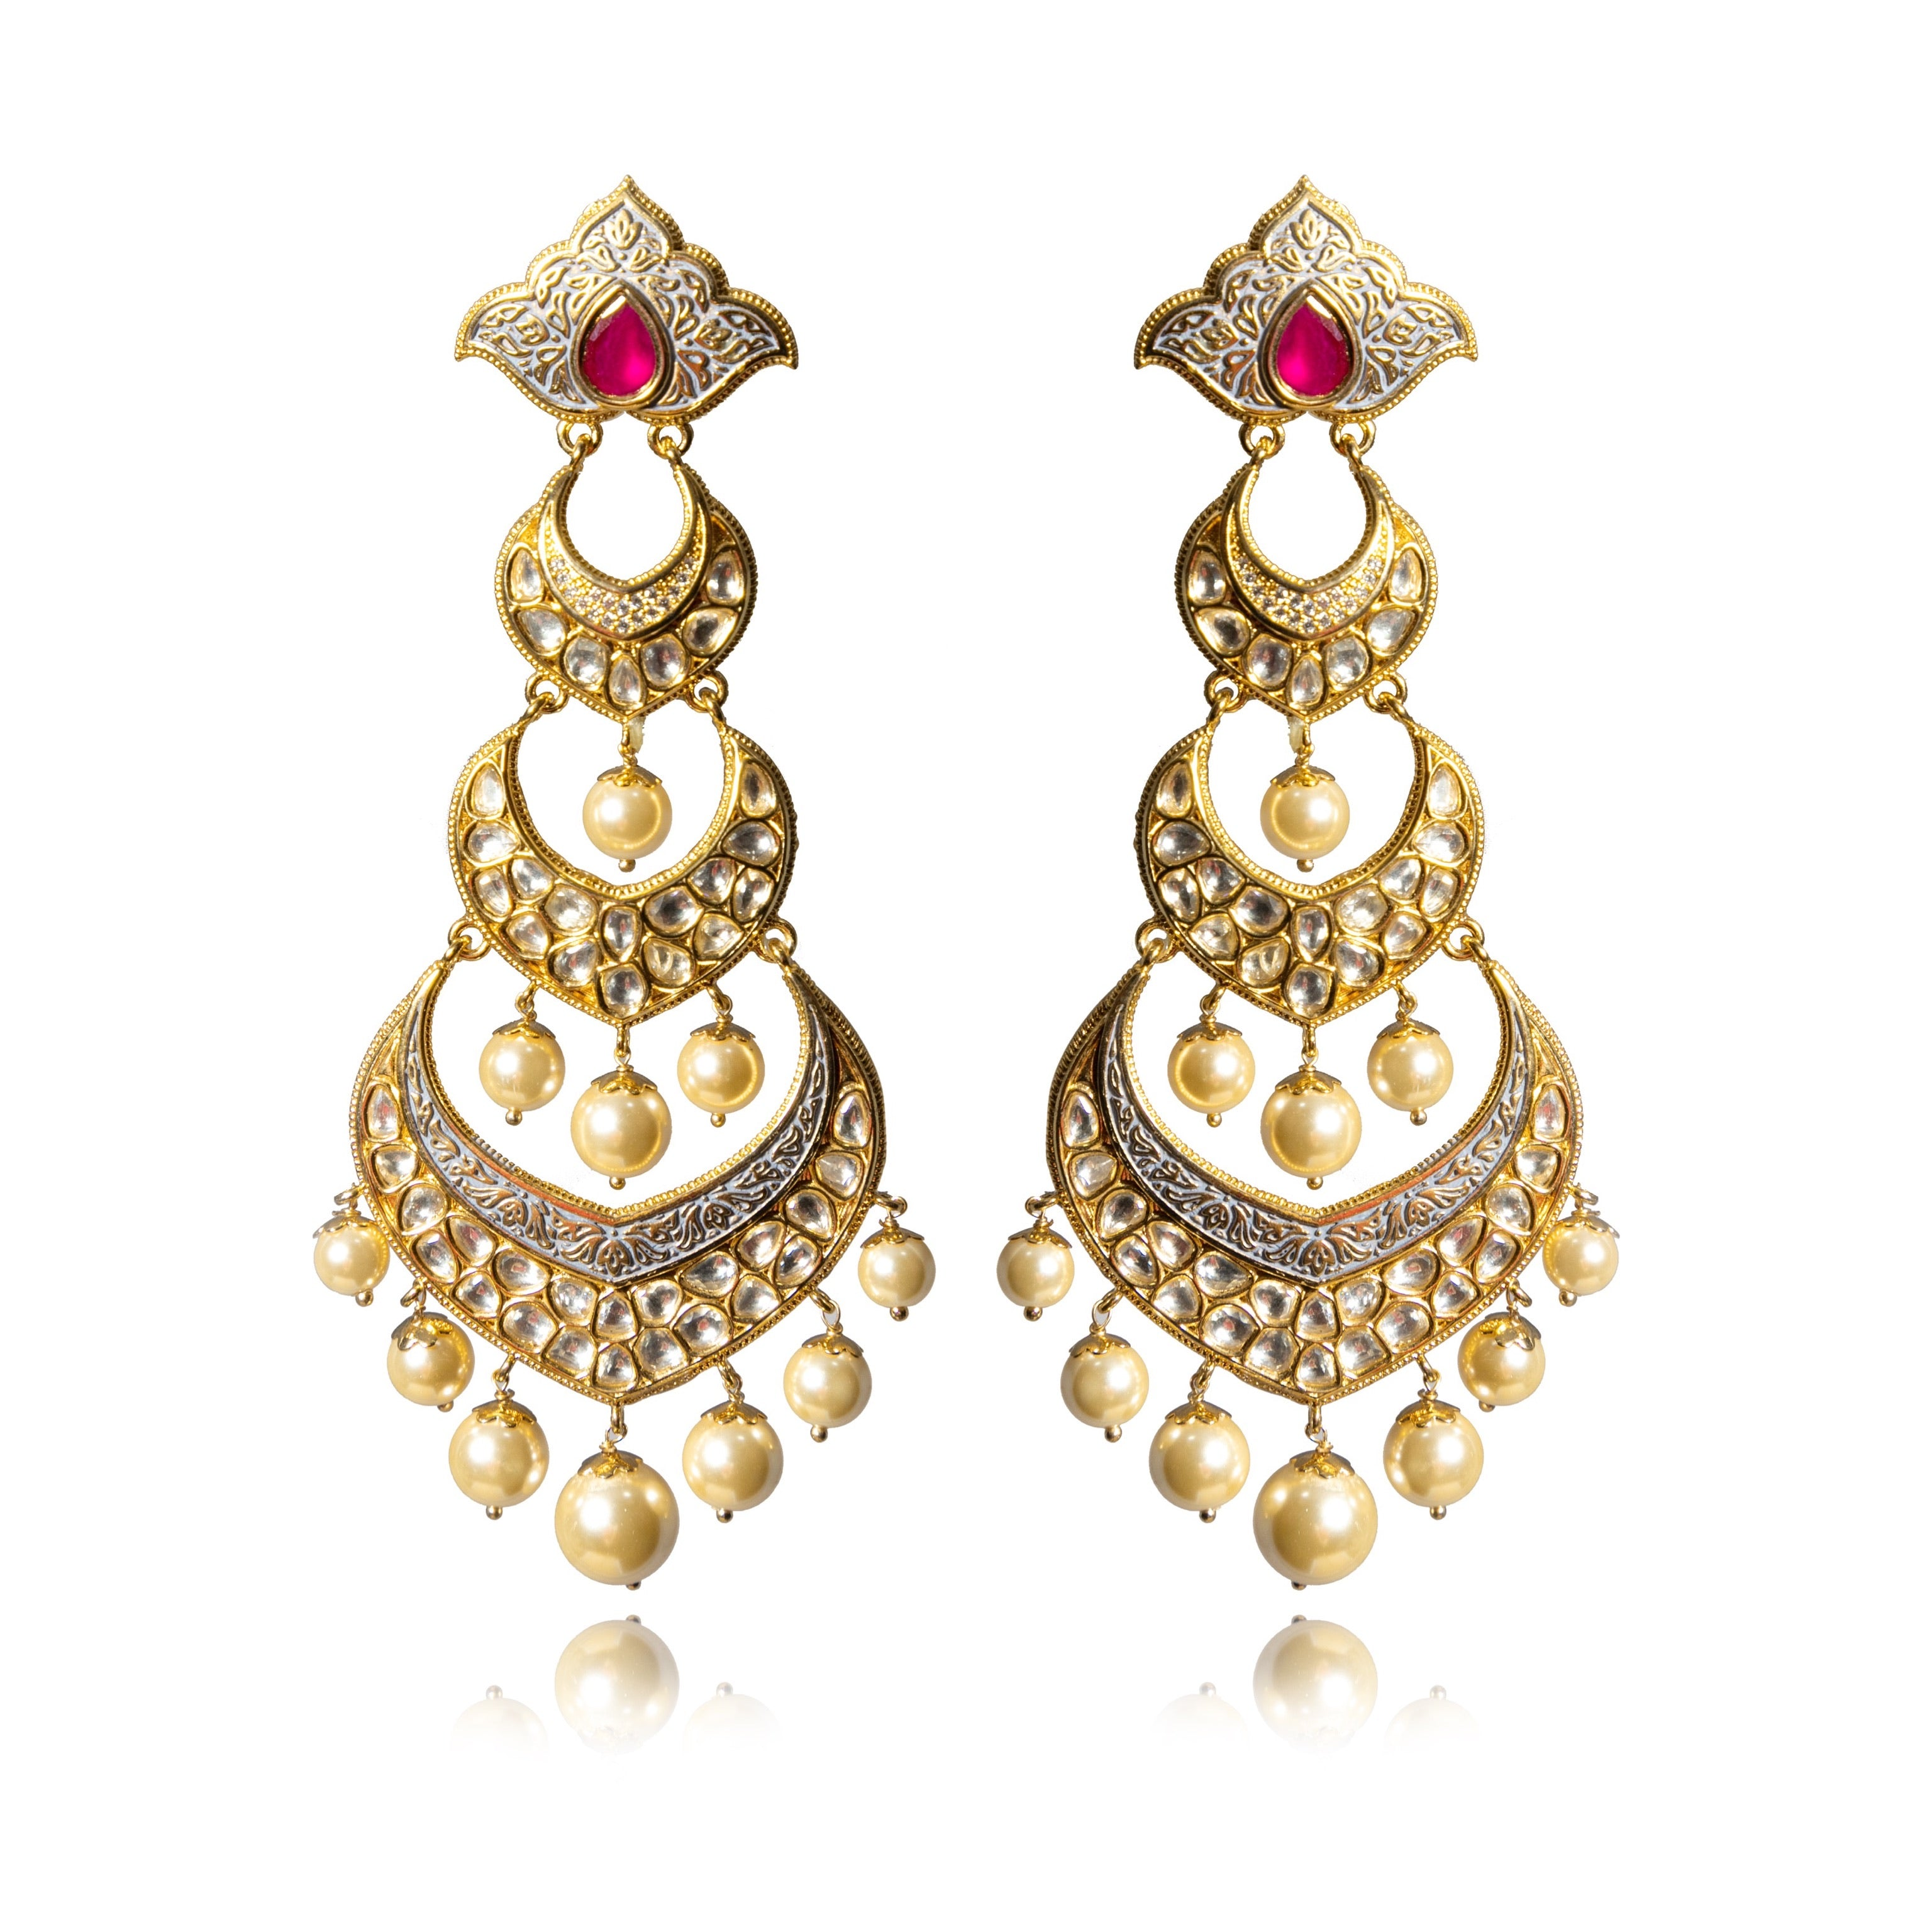 TRIPLE CHAND MEENAKARI EARRINGS